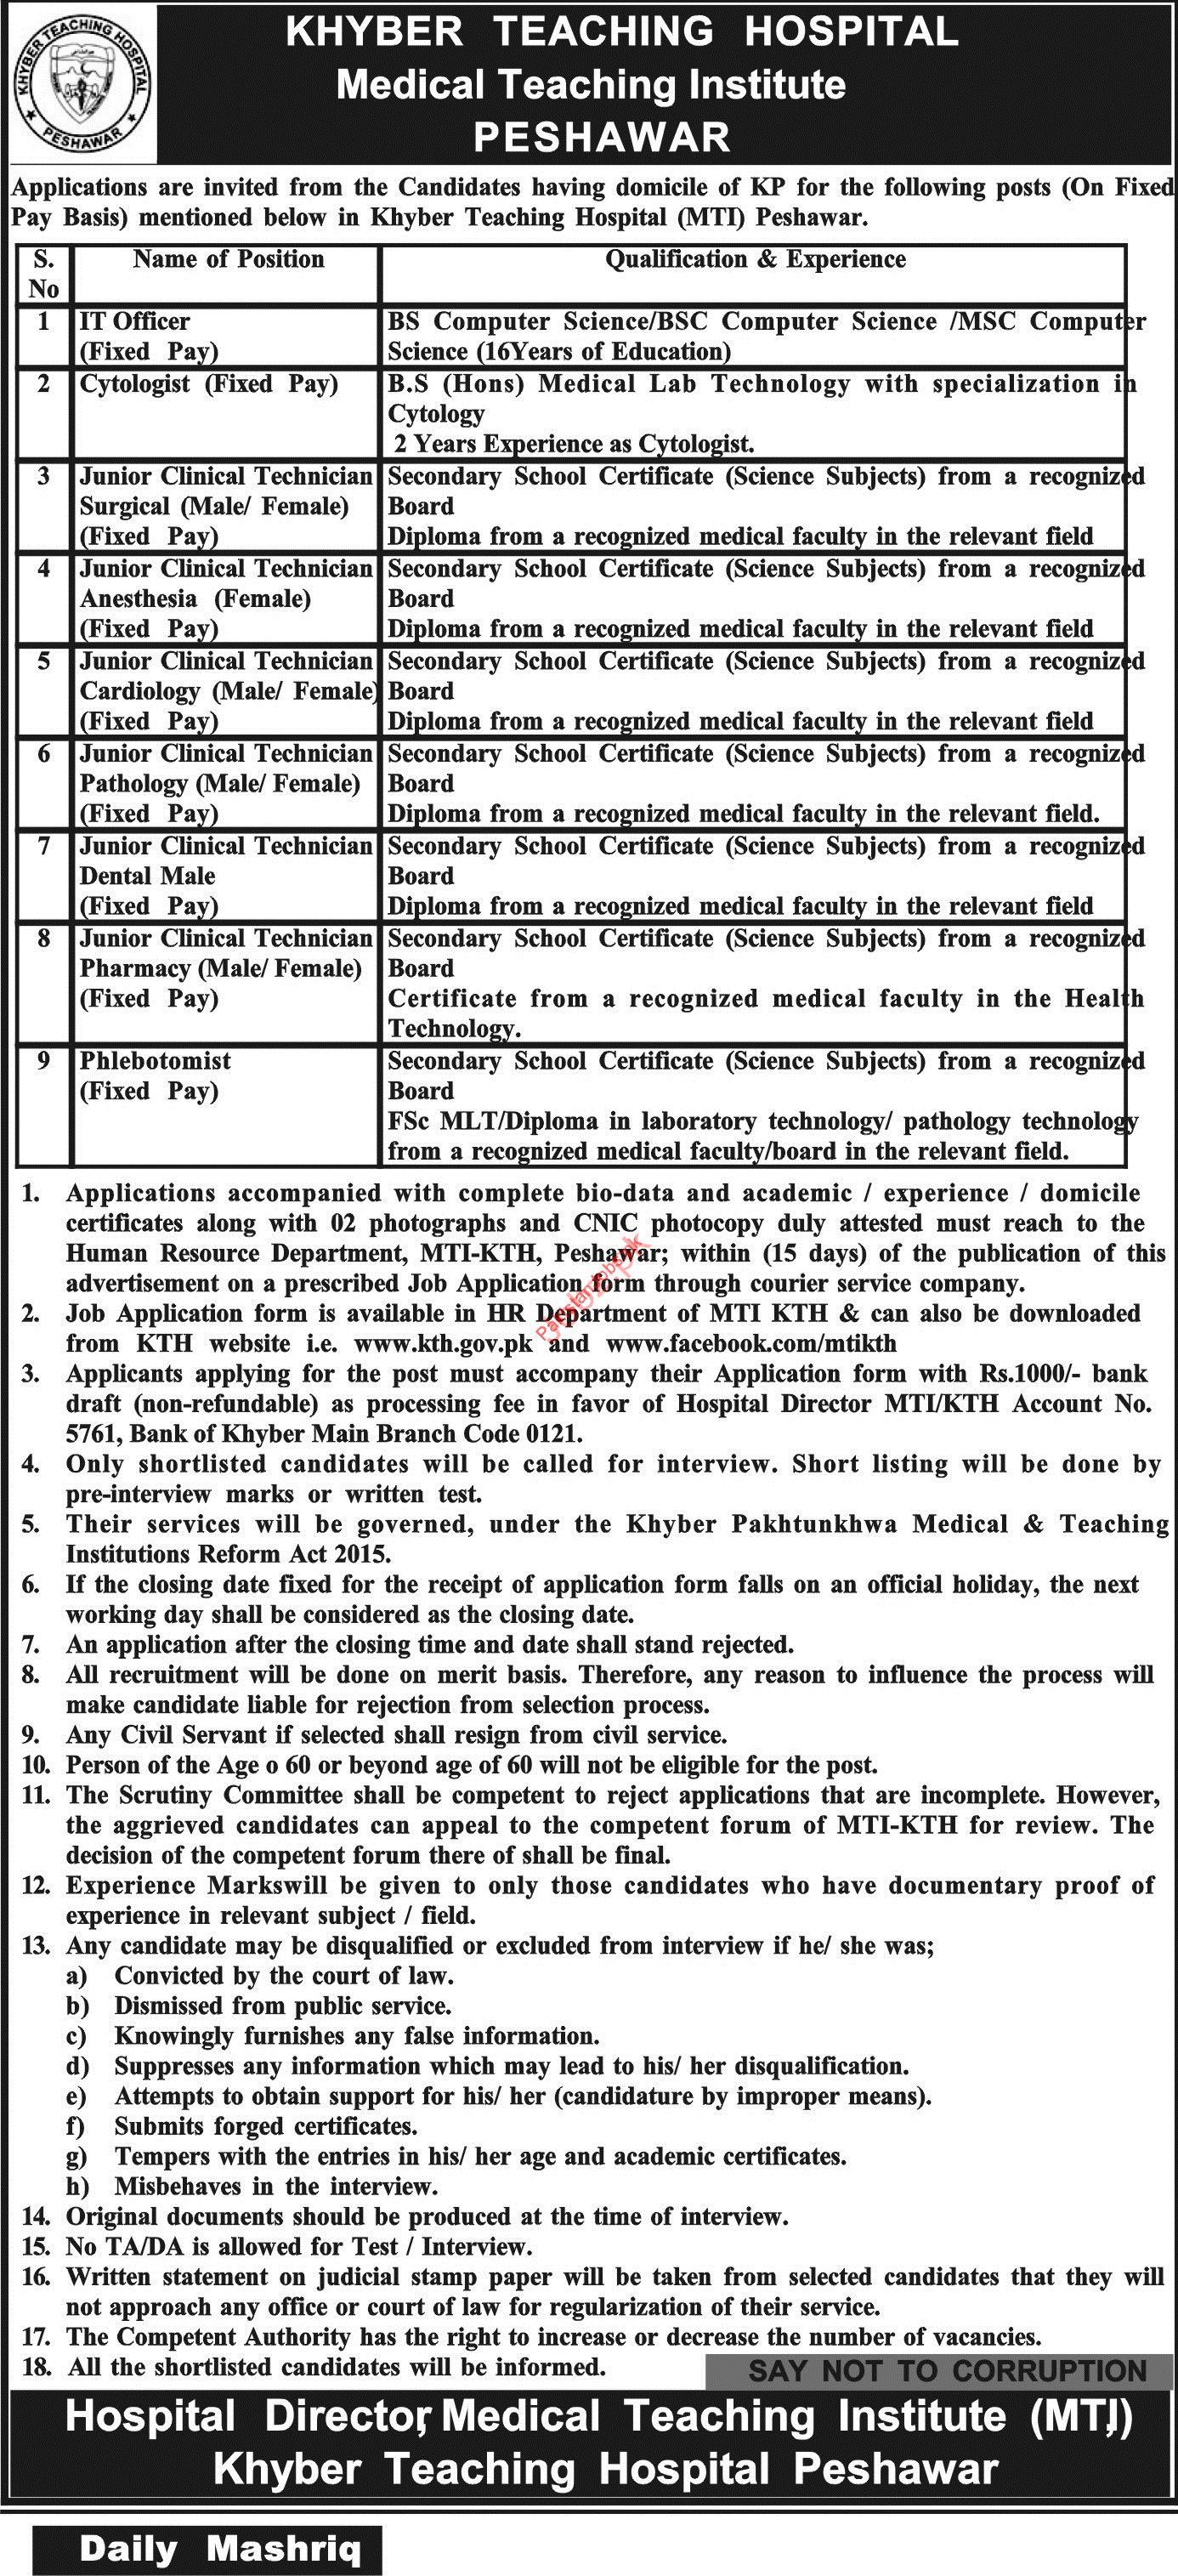 Clinical Technician Jobs in Khyber Teaching Hospital